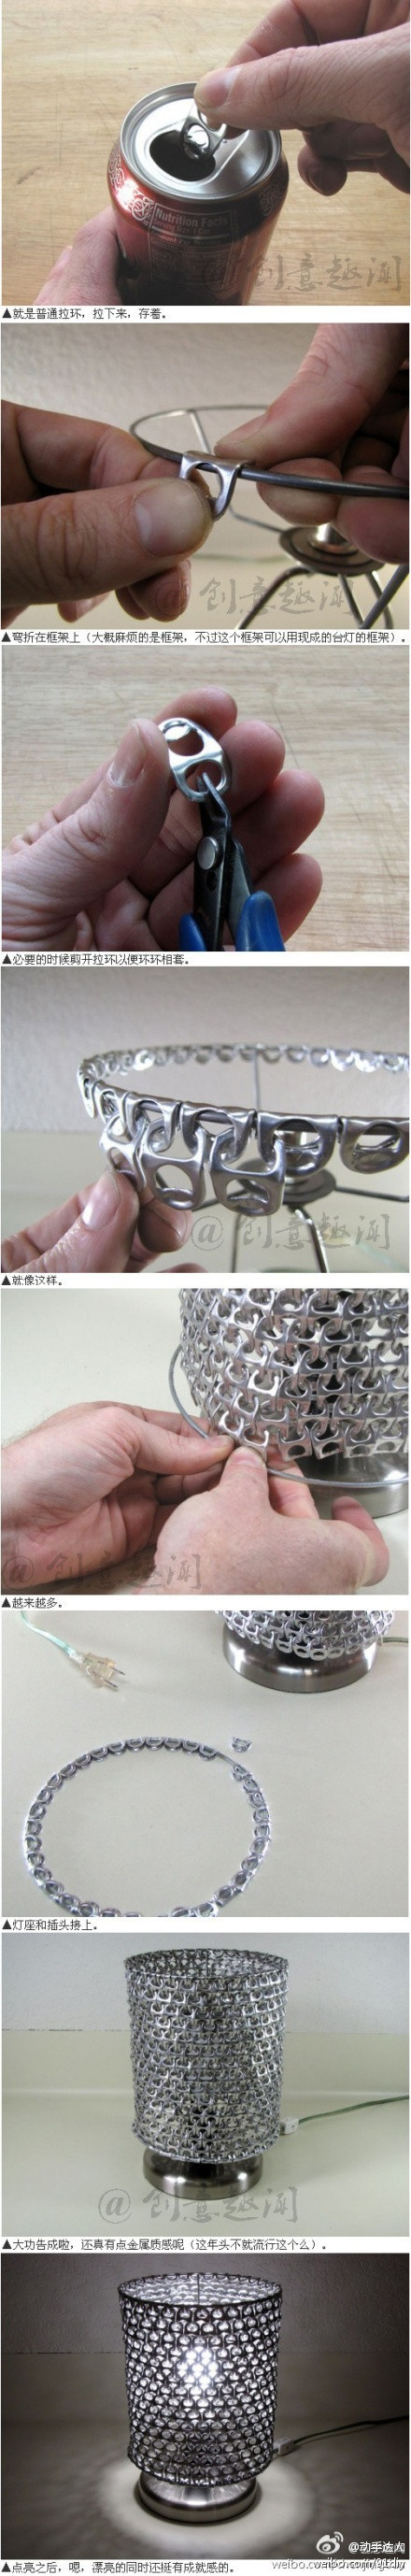 Pull-tab lamp shade